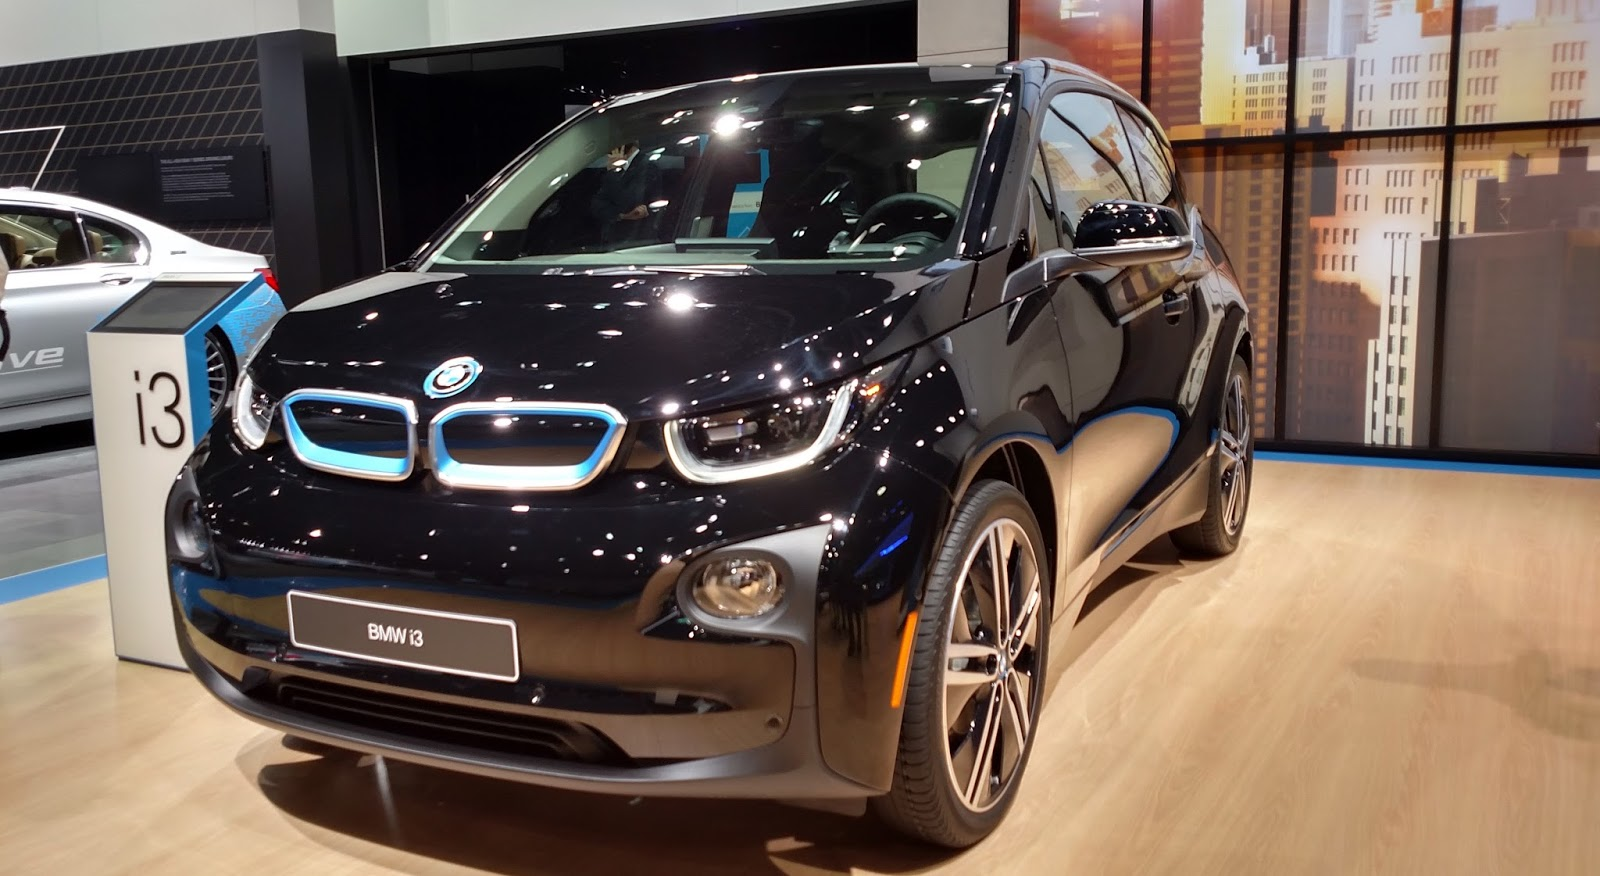 Black Friday Frankfurt 2017 The Electric Bmw I3 2017 Bmw I3 Specs Revealed With Some